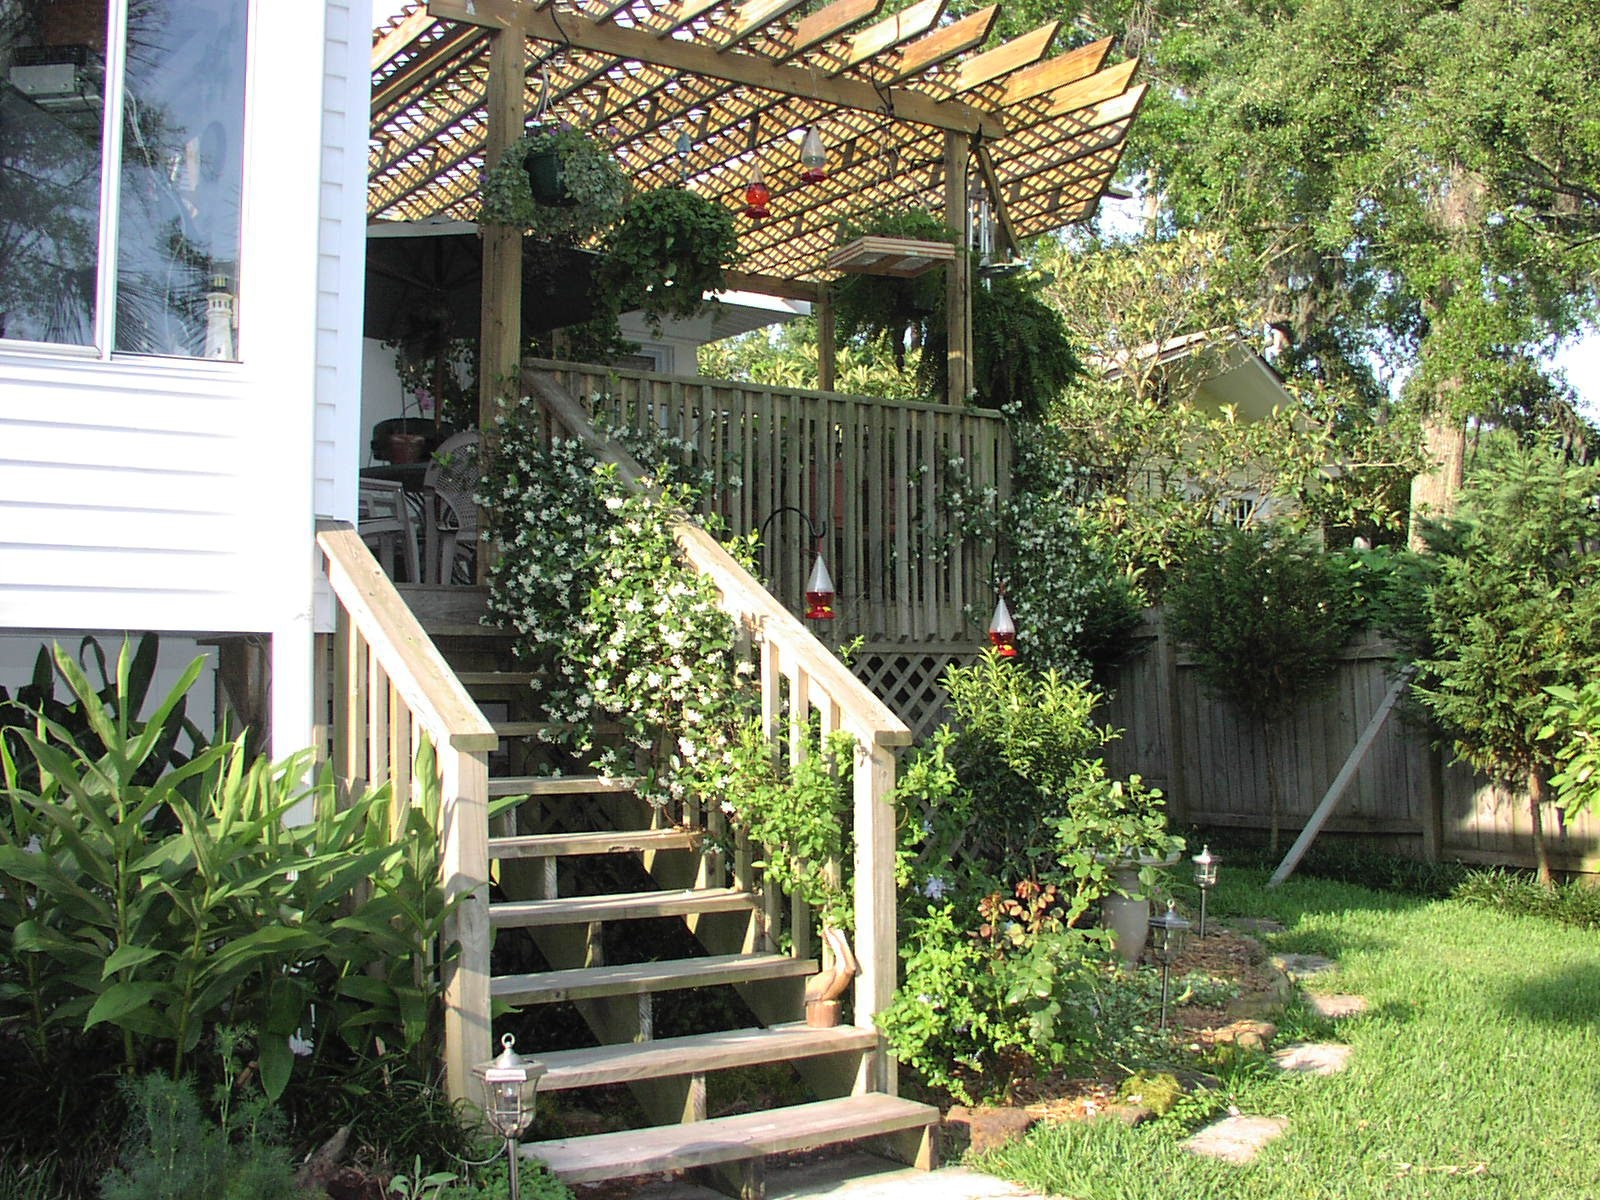 Most decks should be cleaned thoroughly and given a fresh coat of stain or sealant every two to four years.